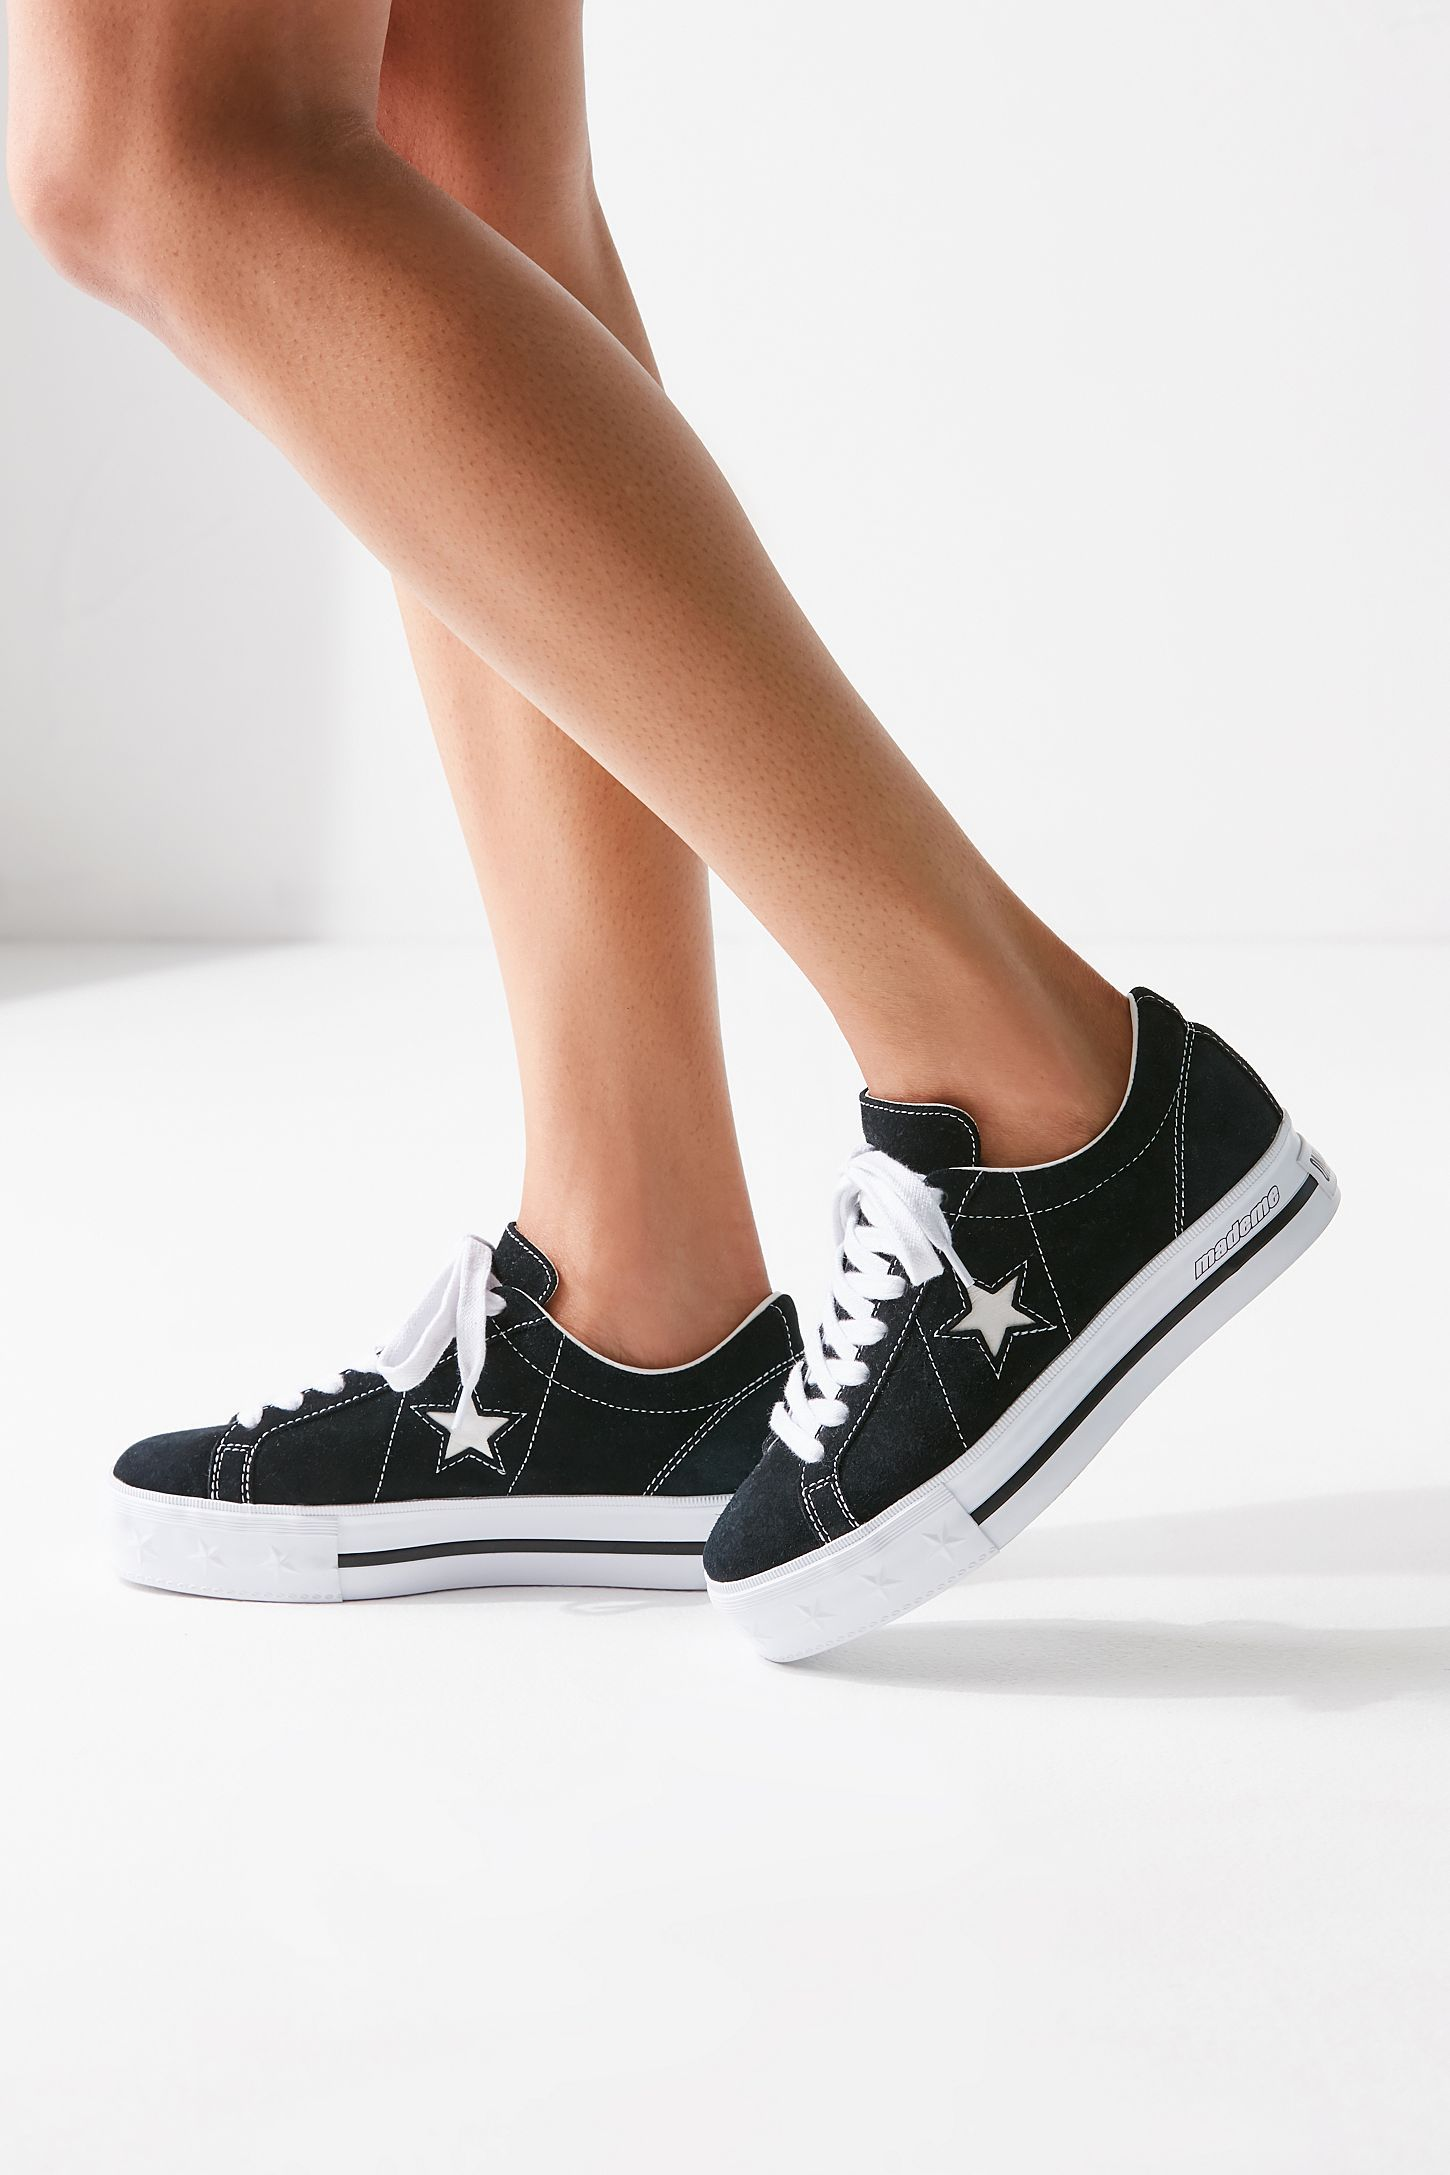 fda2b9aedbbe Slide View  6  Converse One Star X MadeMe Suede Platform Sneaker